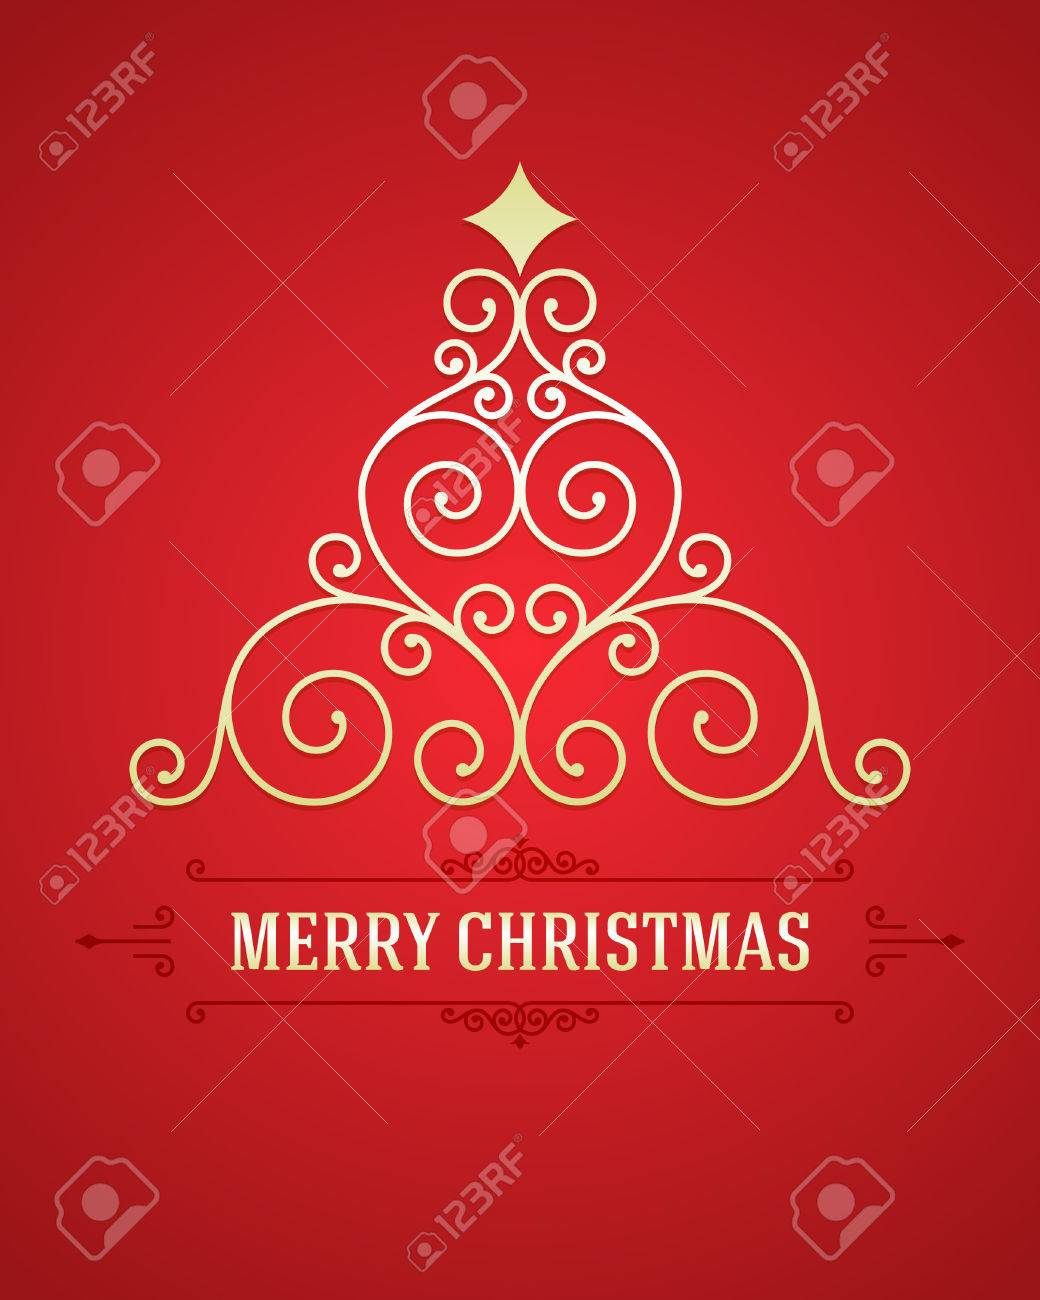 Christmas tree from flourishes calligraphic background Stock Vector - 22524746